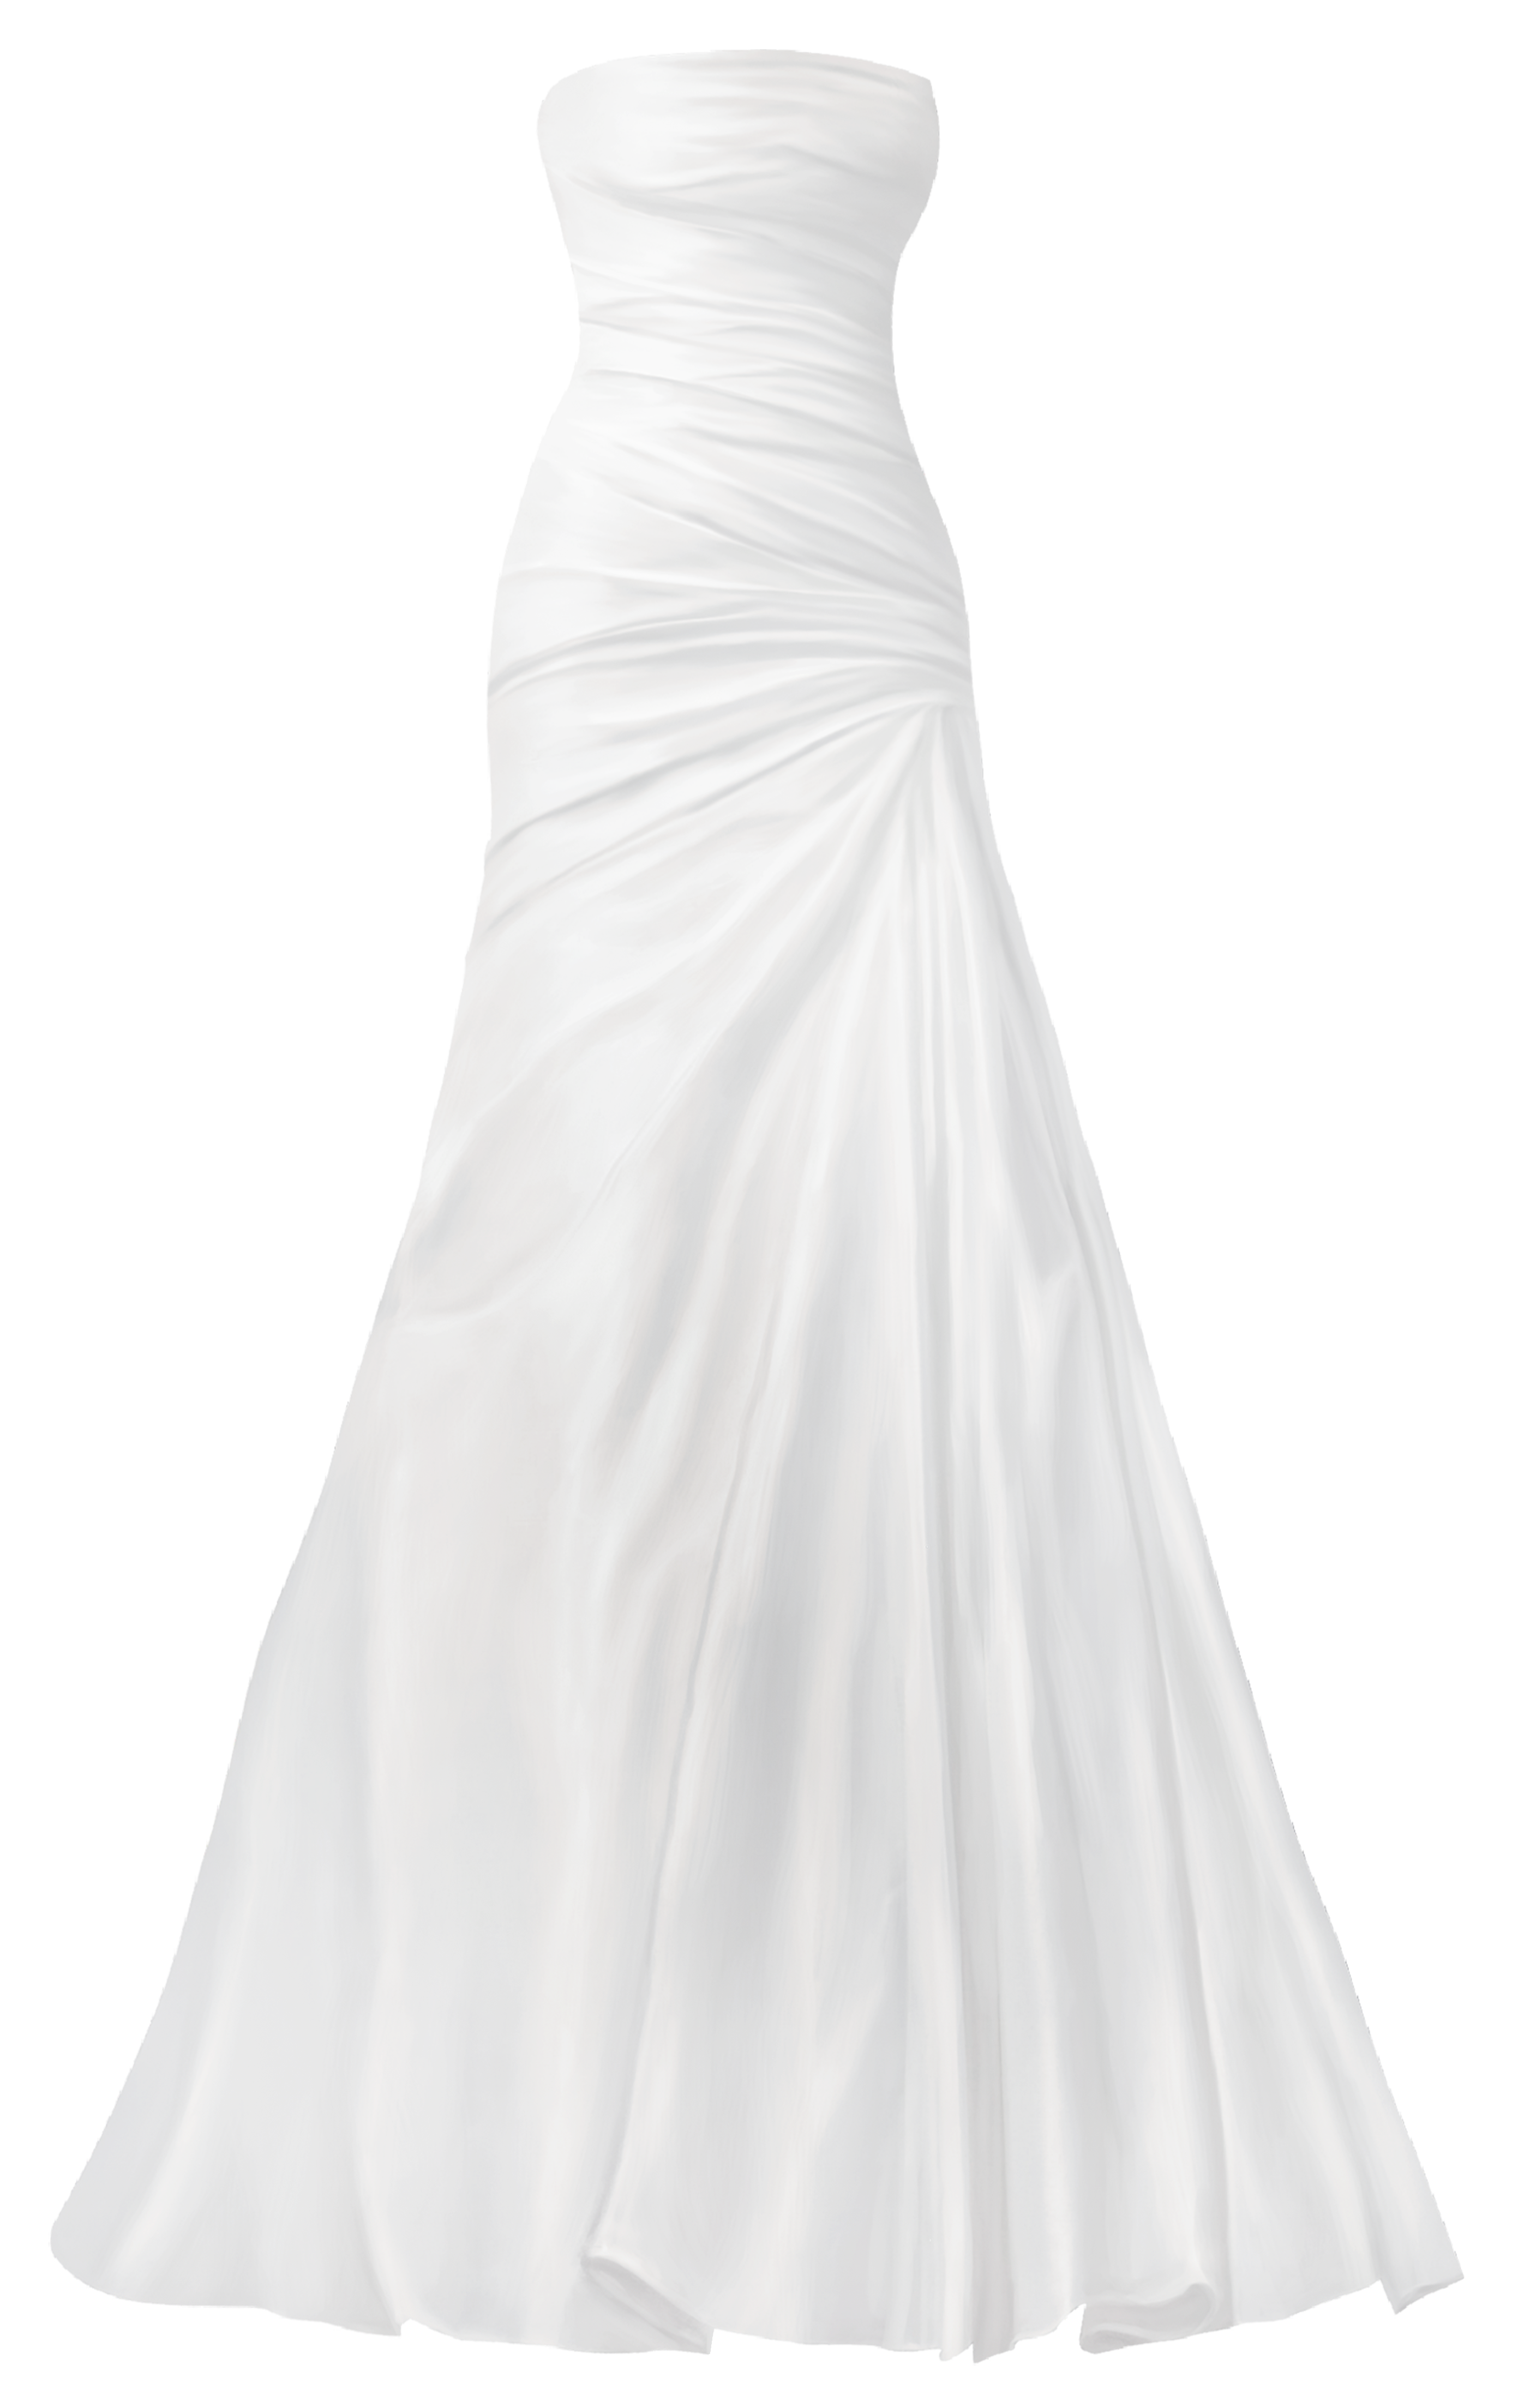 clip royalty free Classical wedding dress png. Bridal clipart summer.